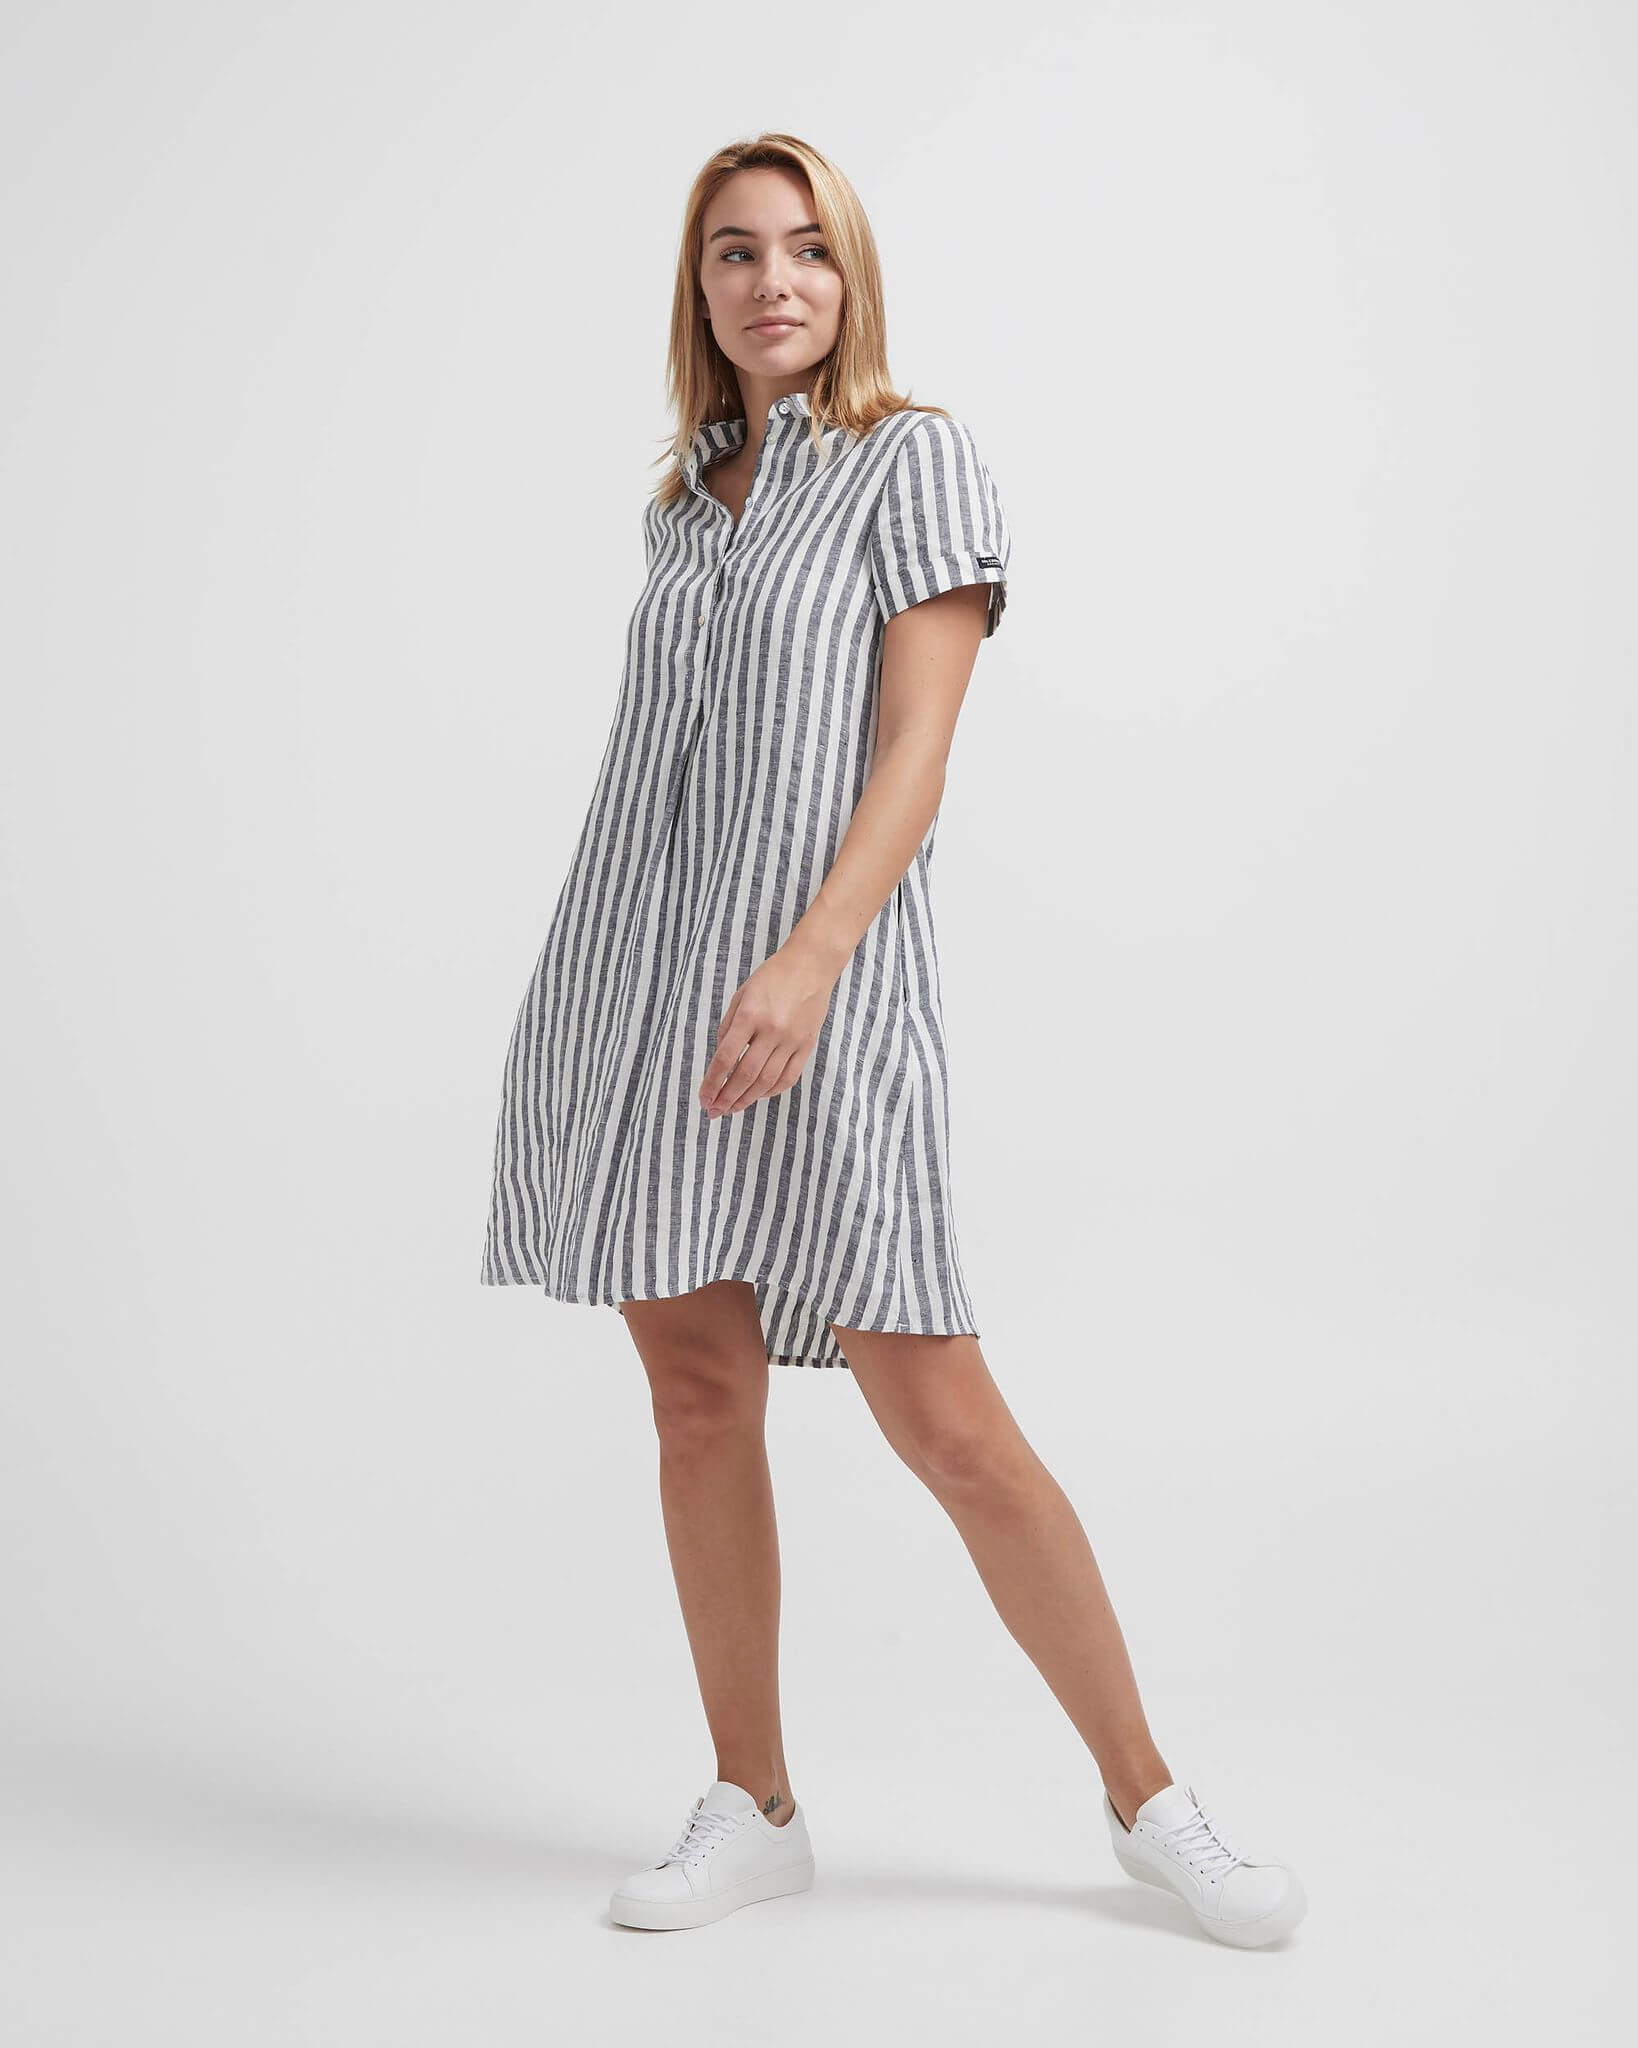 Holebrook Naisten Mekko, Solina Tunic Dress Raidallinen Sininen